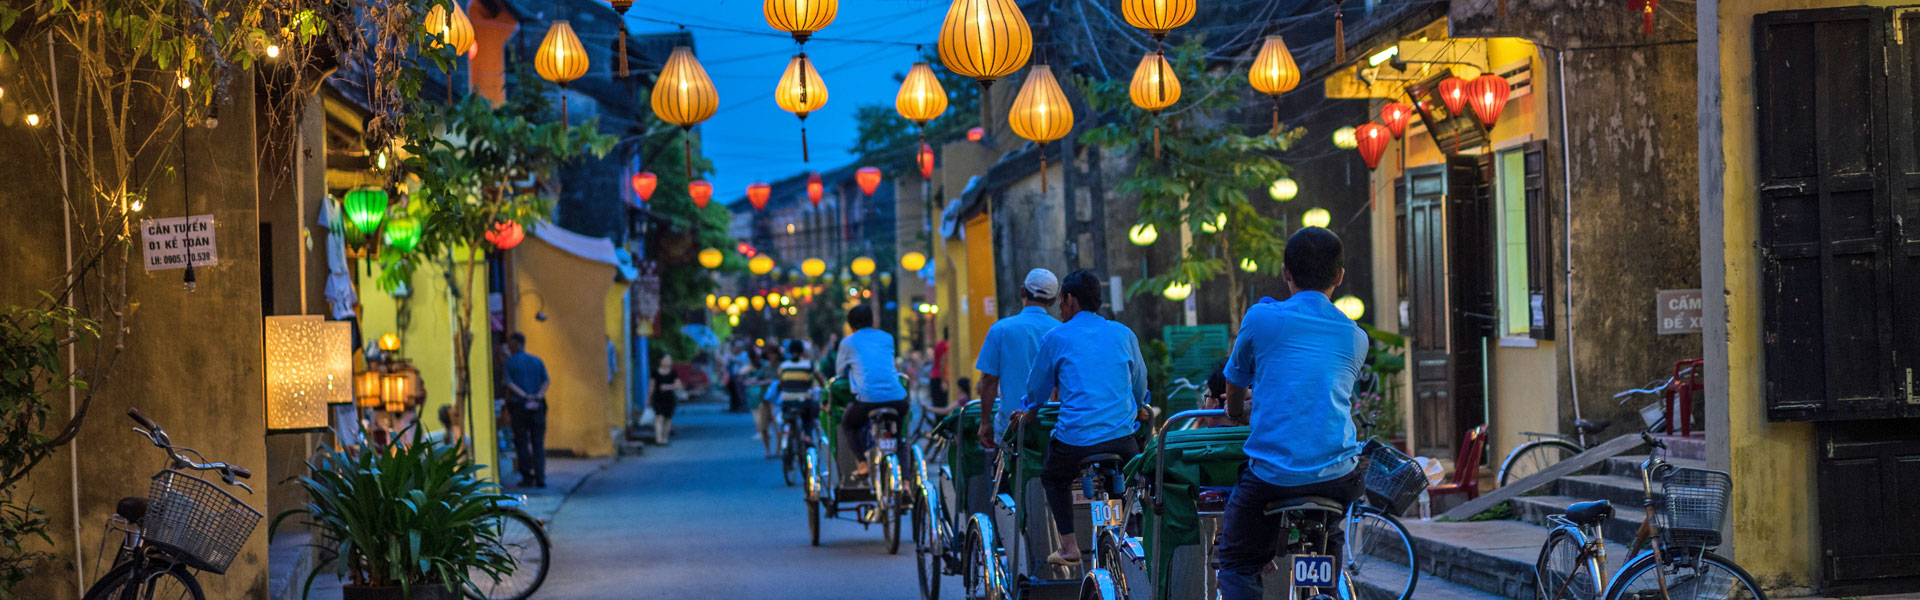 Why You Should Go To Vietnam | Wendy Wu Tours Blog